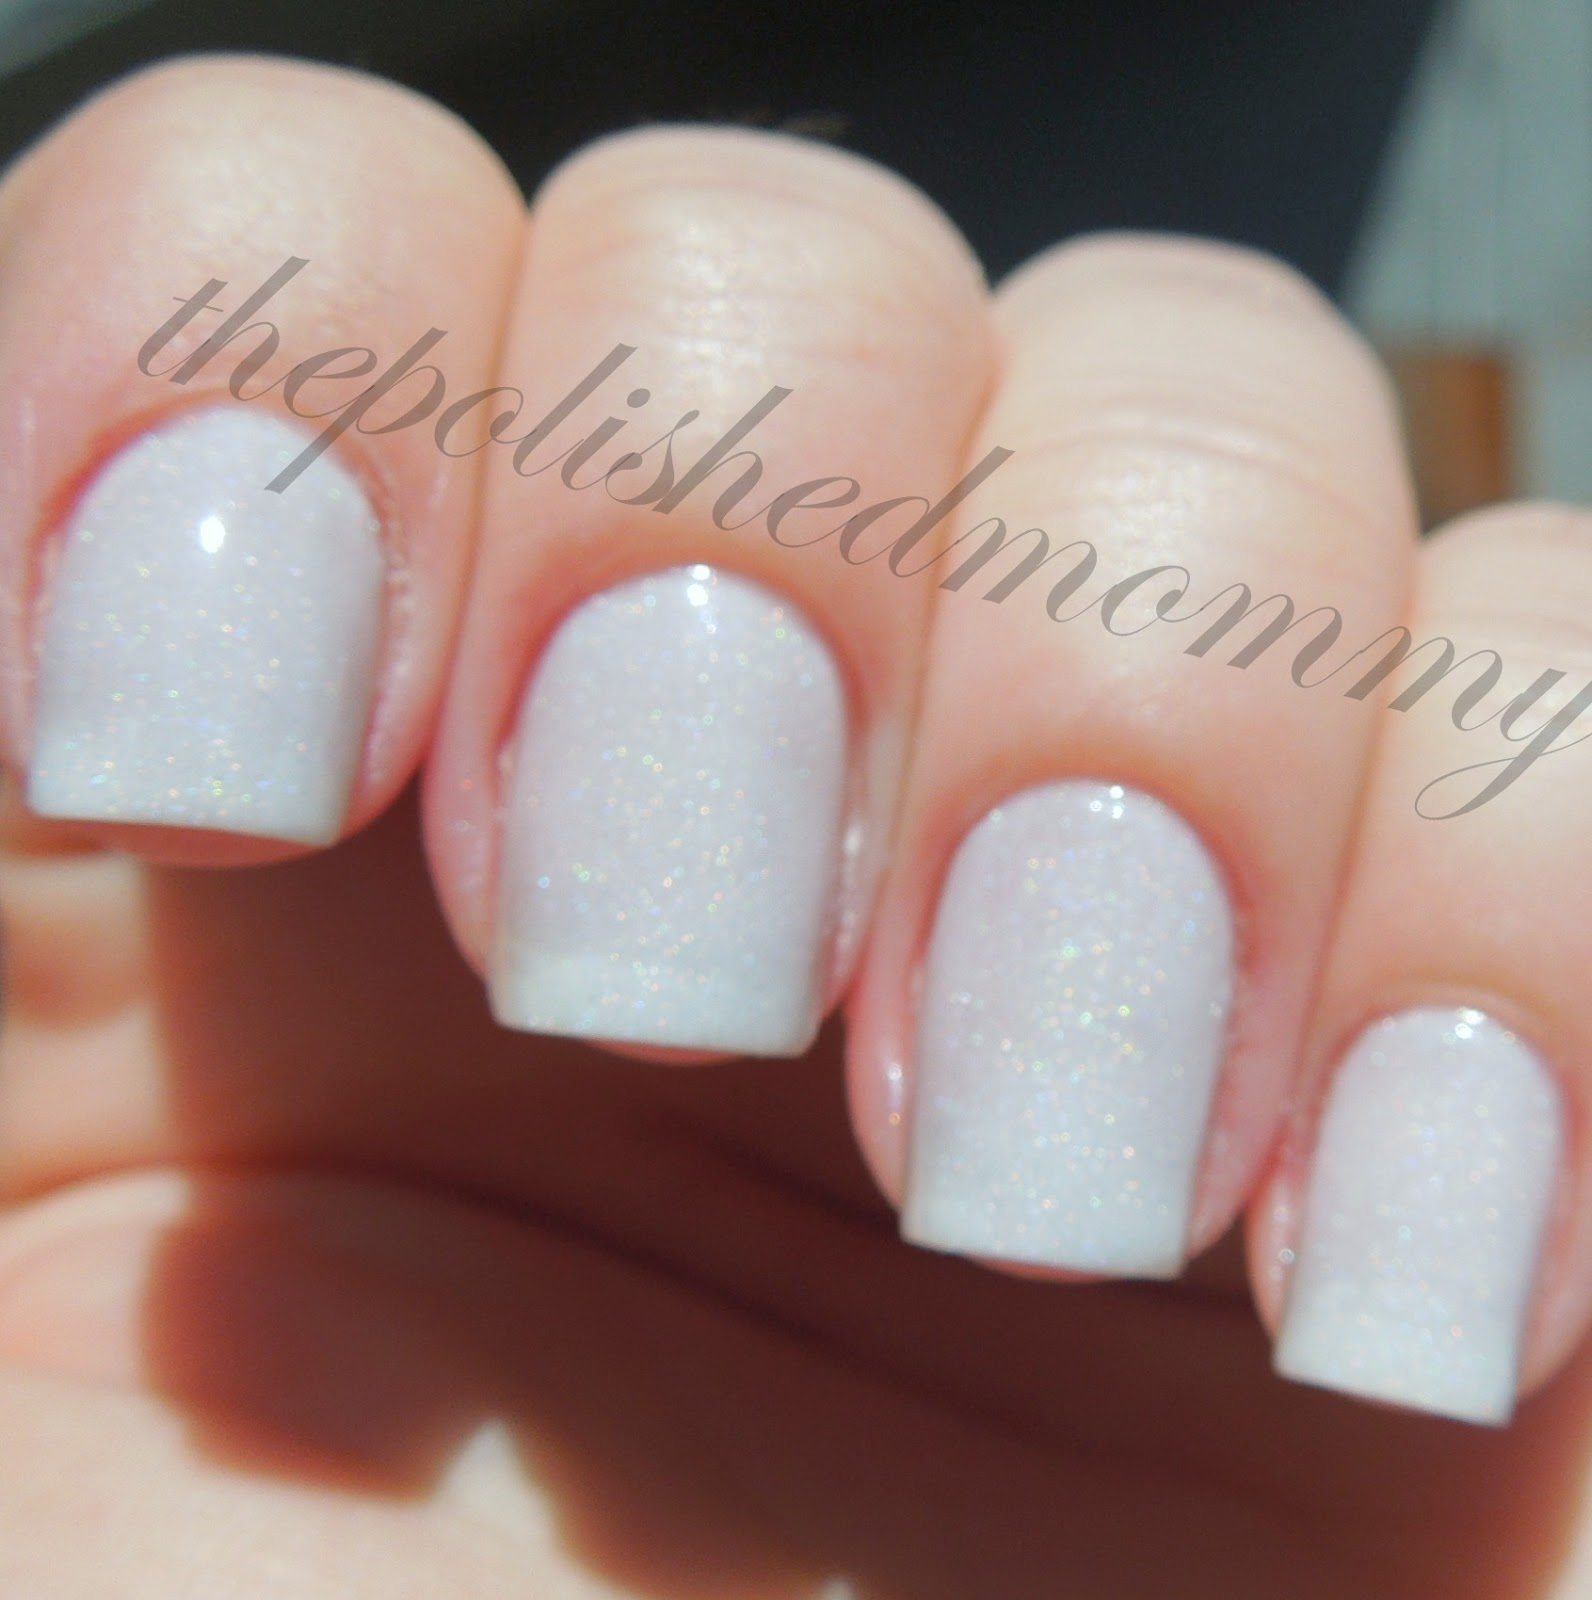 Frost is a Sheer White Holo